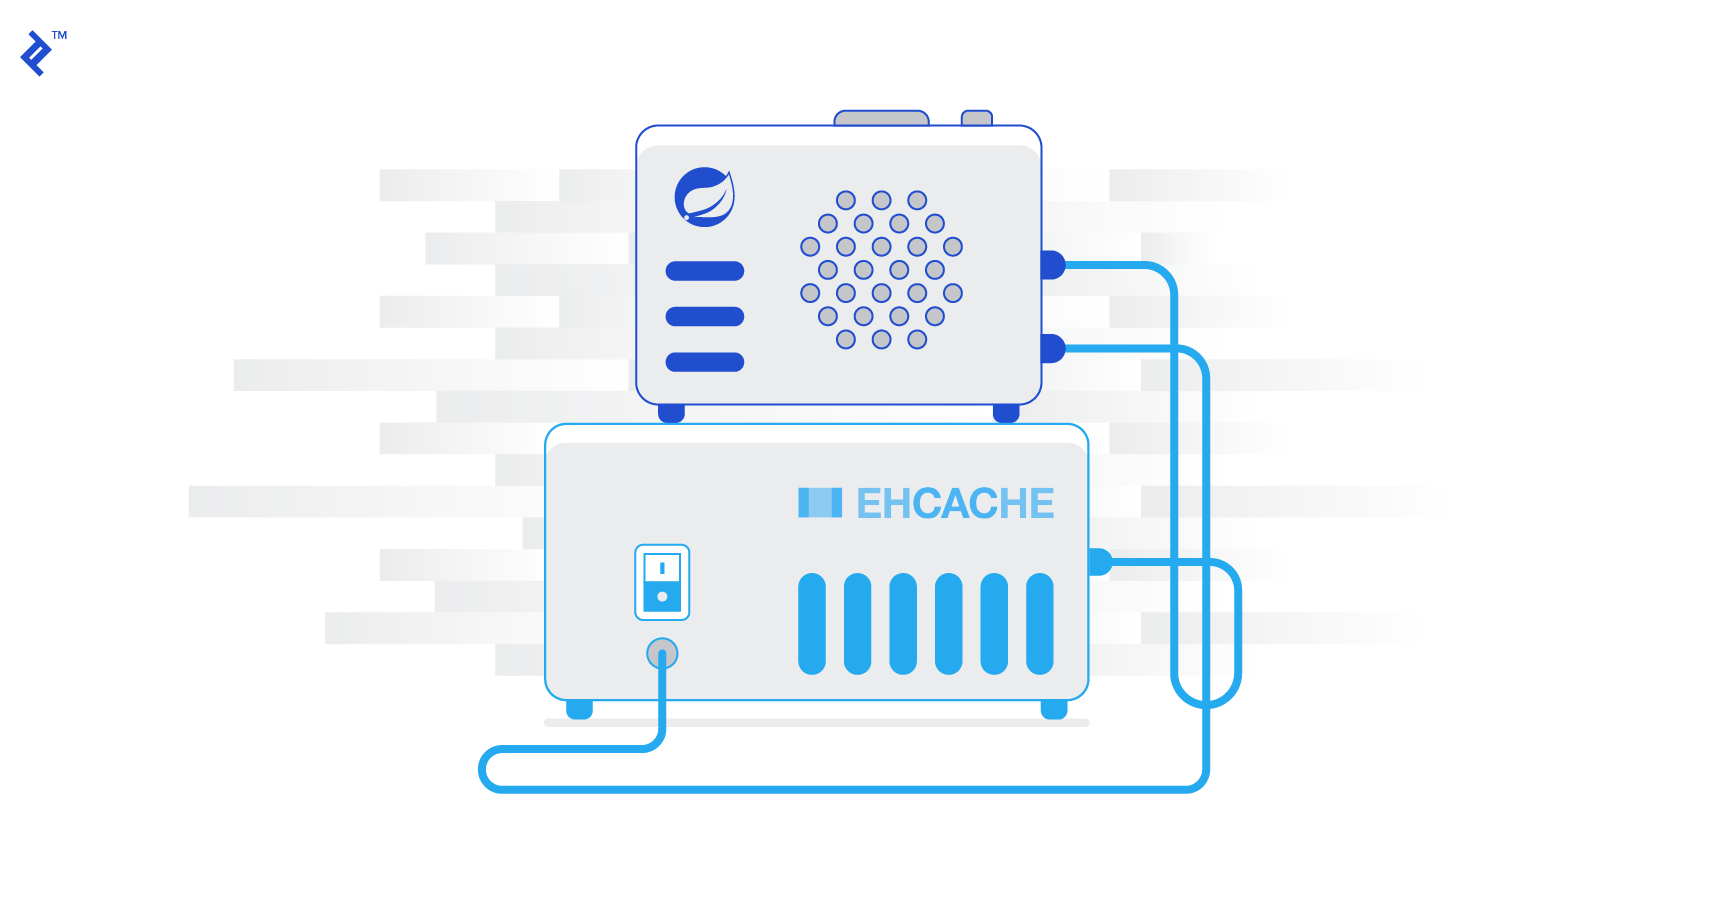 EhCache Spring Annotations makes EhCache easy and seamless to deploy in your app.